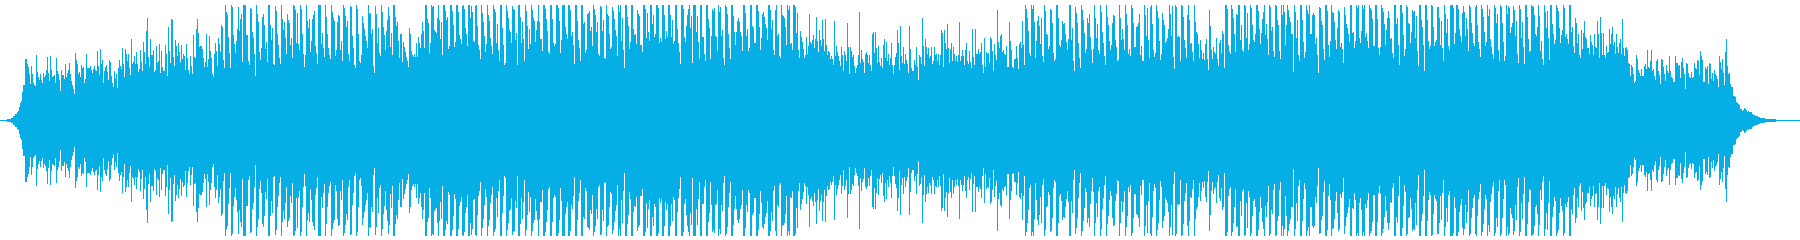 emotional's reproduced waveform